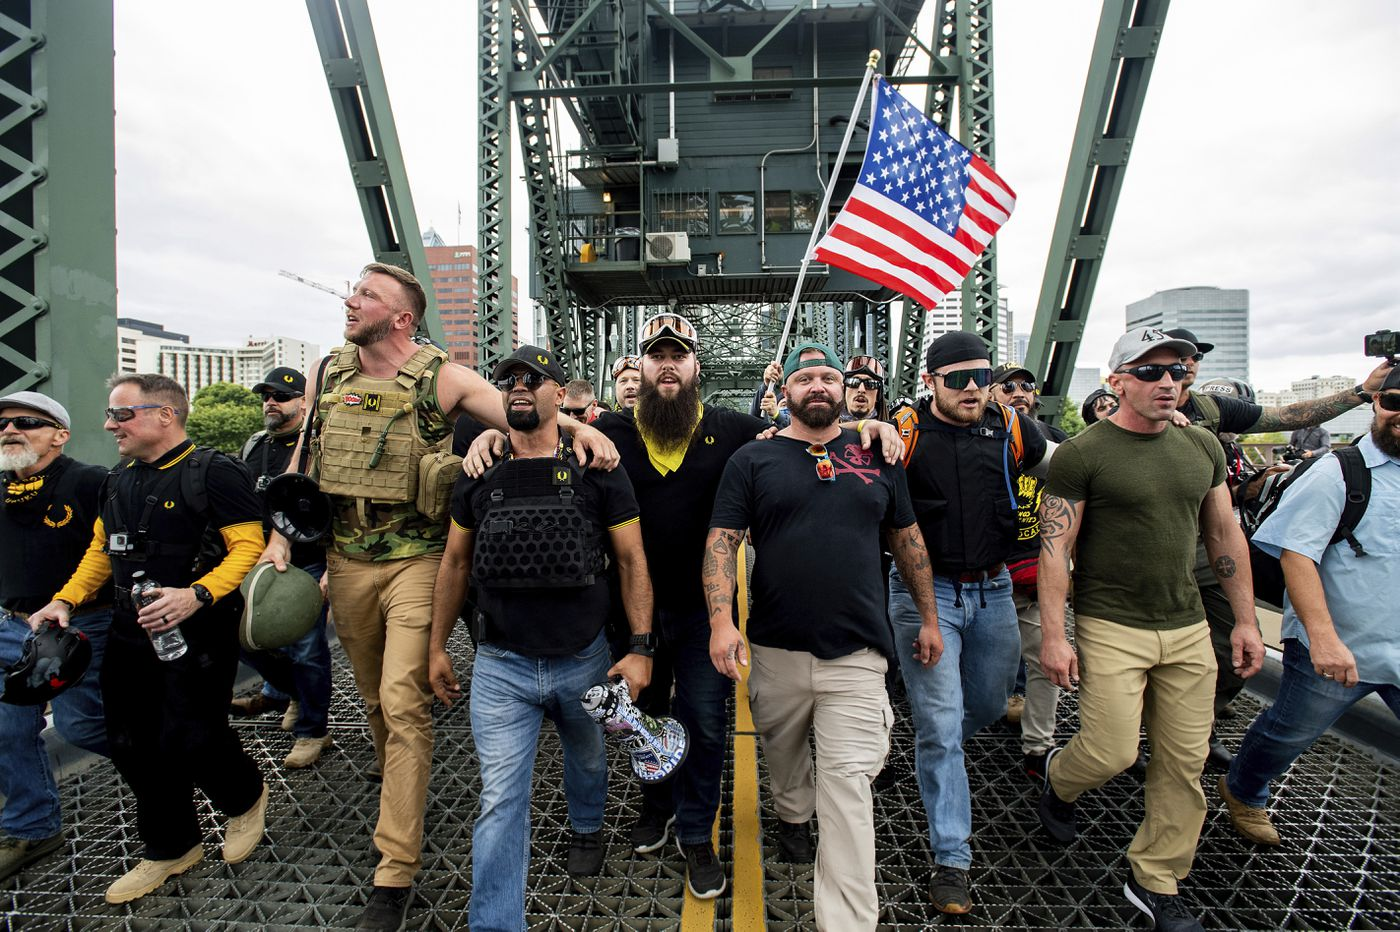 Portland, Oregon 'ground zero' for protests between right, left-wing